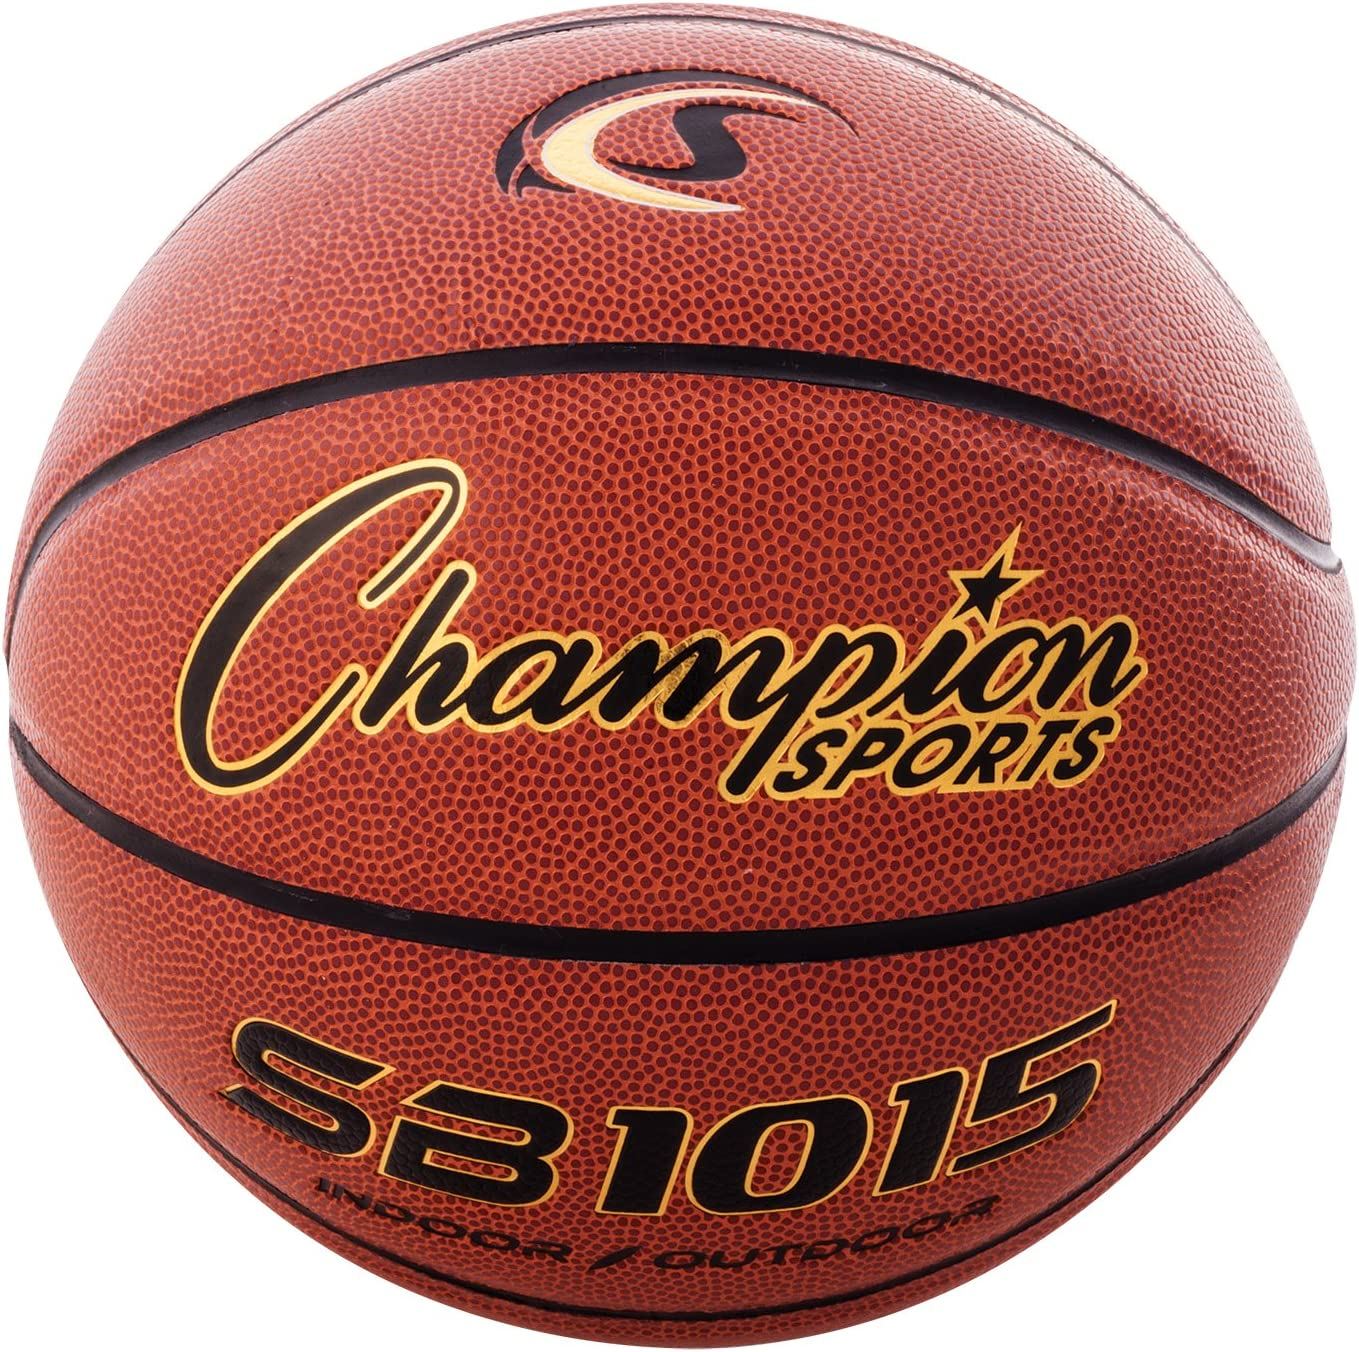 "Champion Sports Composite Game Basketballs, Cordley Composite Basketball, Junior (Size 5 - 27.5"") : Sports & Outdoors"